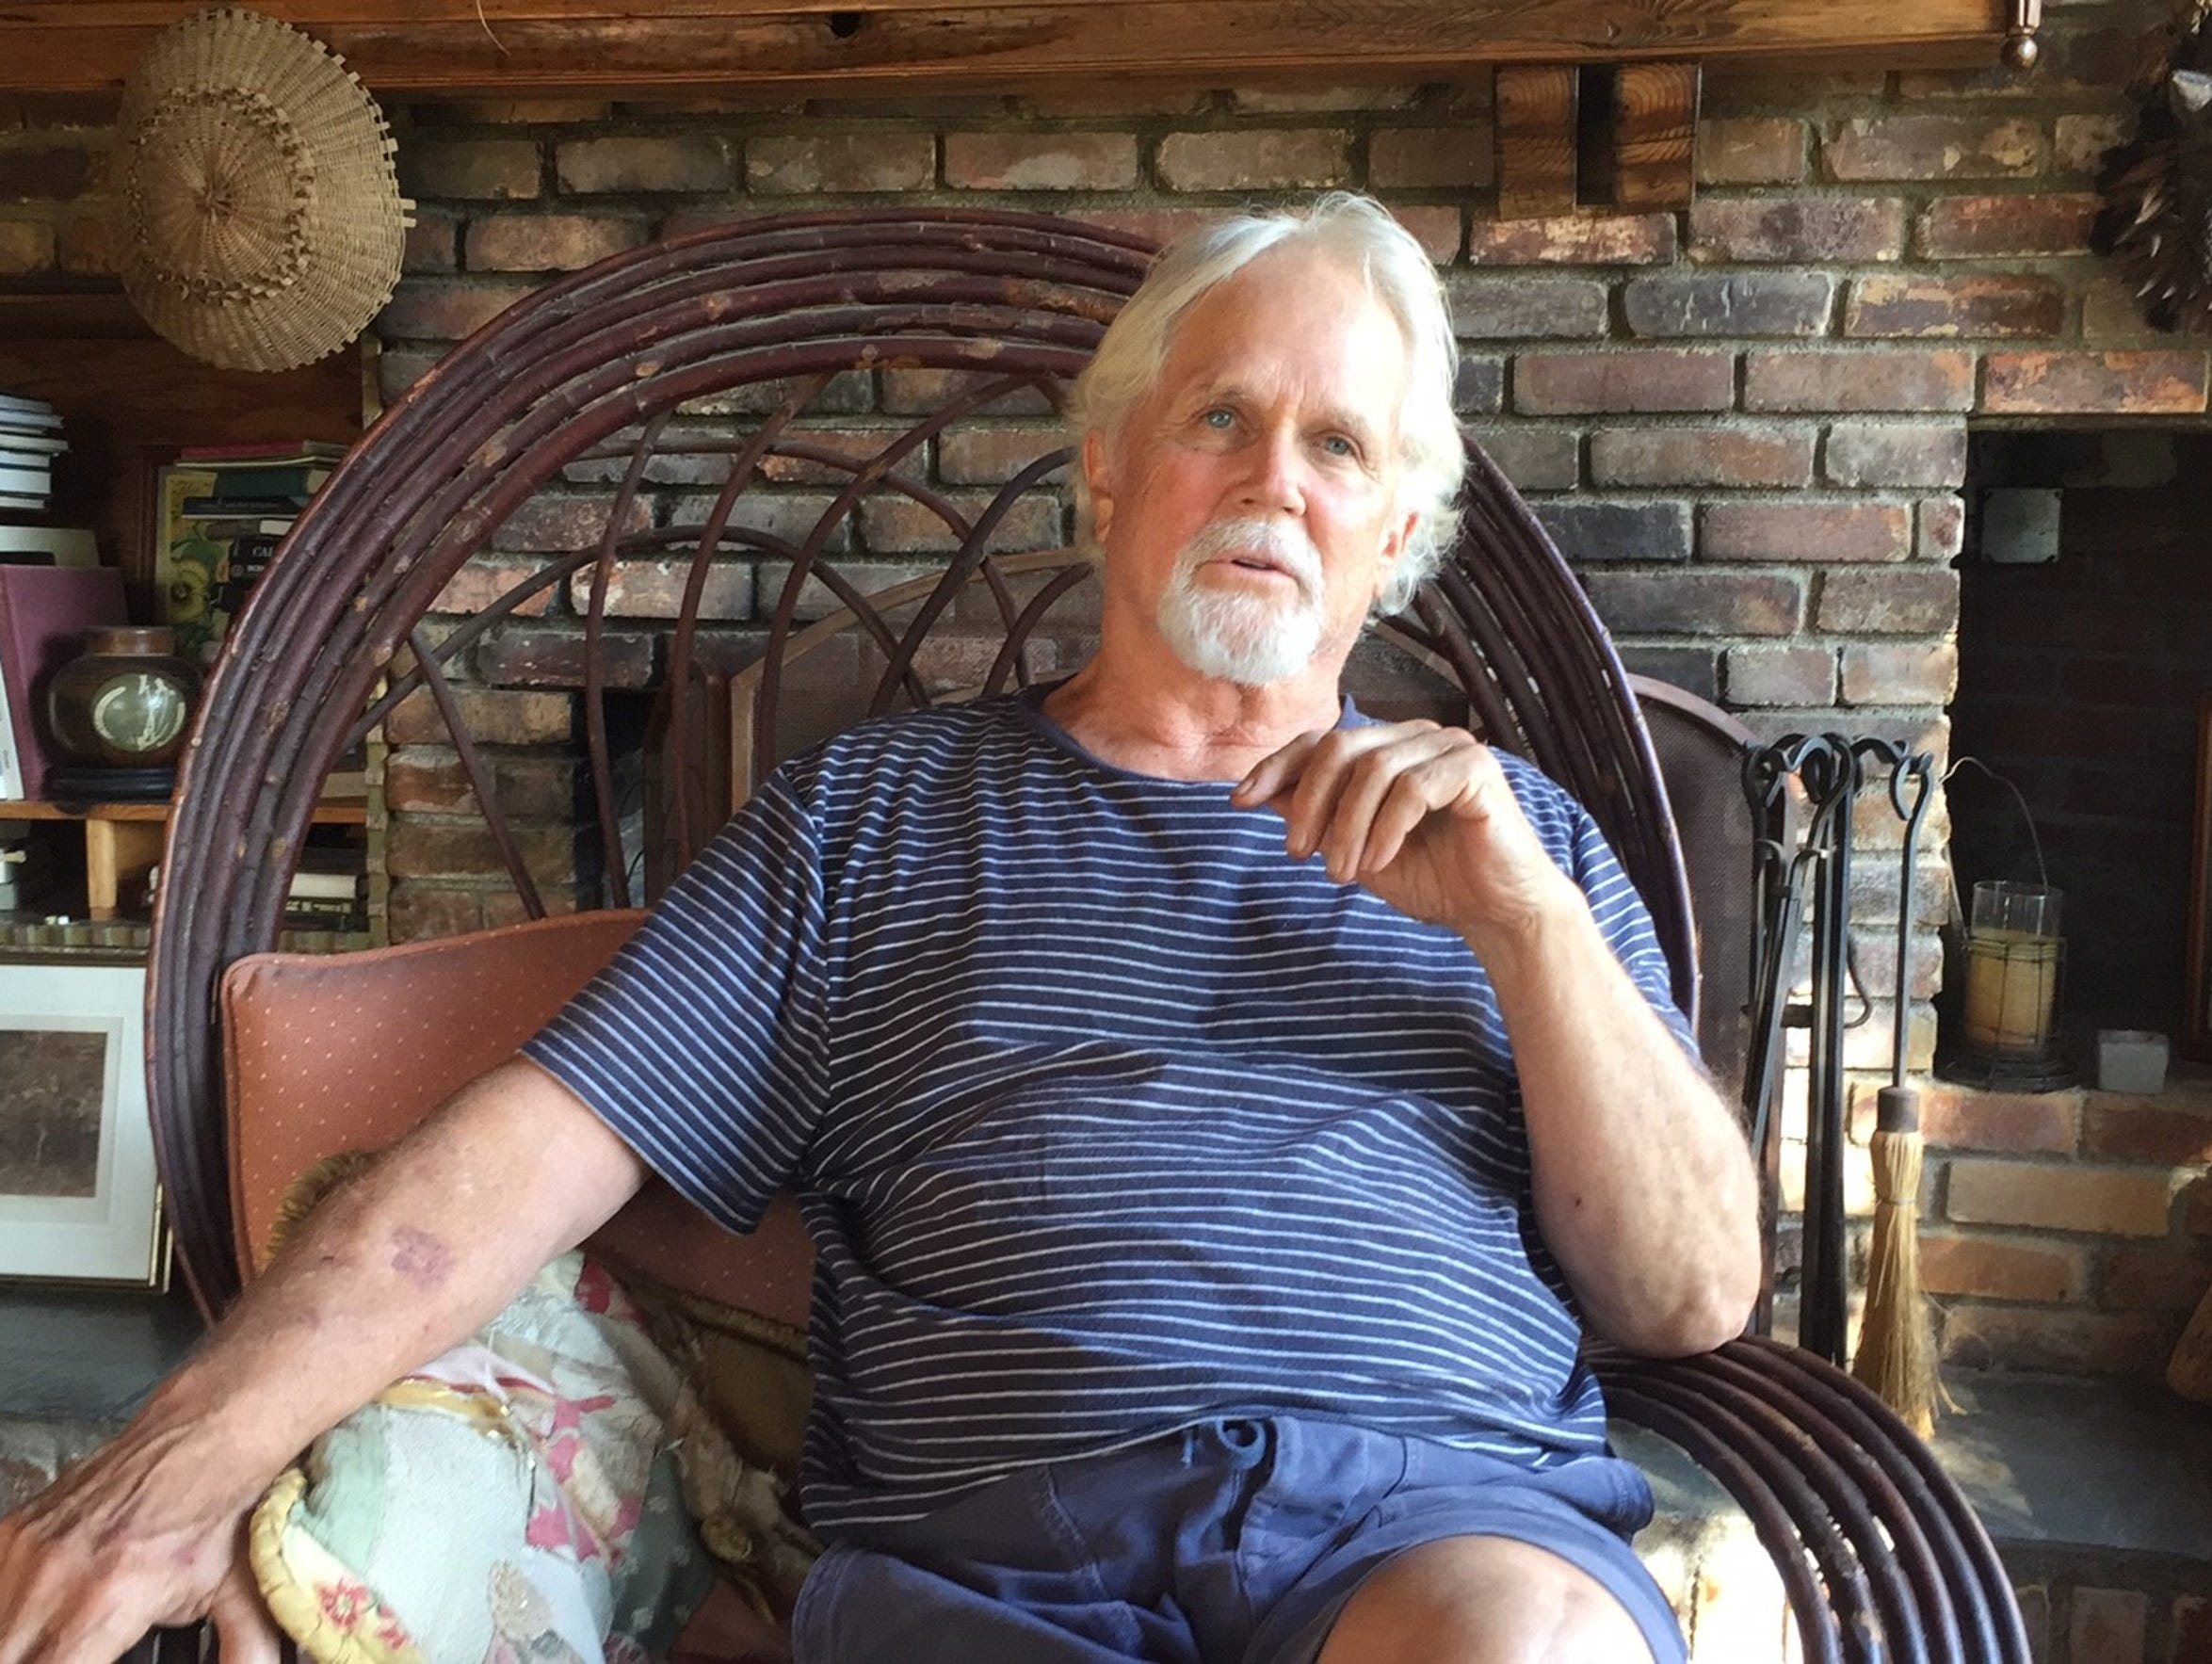 Tony Dow says he was ready for serious roles after